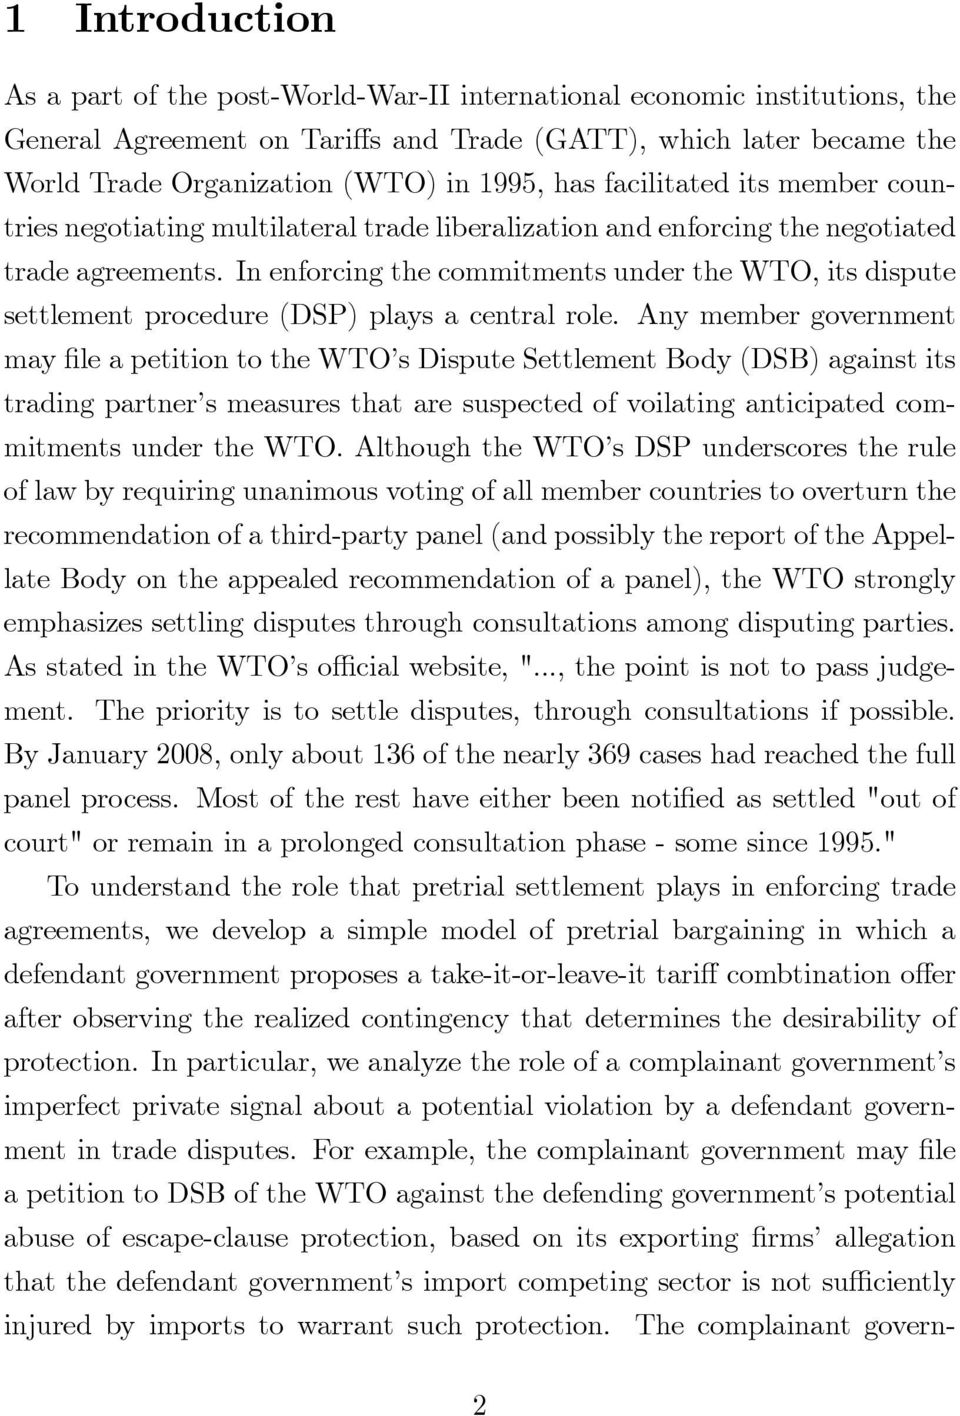 In enforcing te commitments under te WTO, its dispute settlement procedure (DSP) plays a central role.